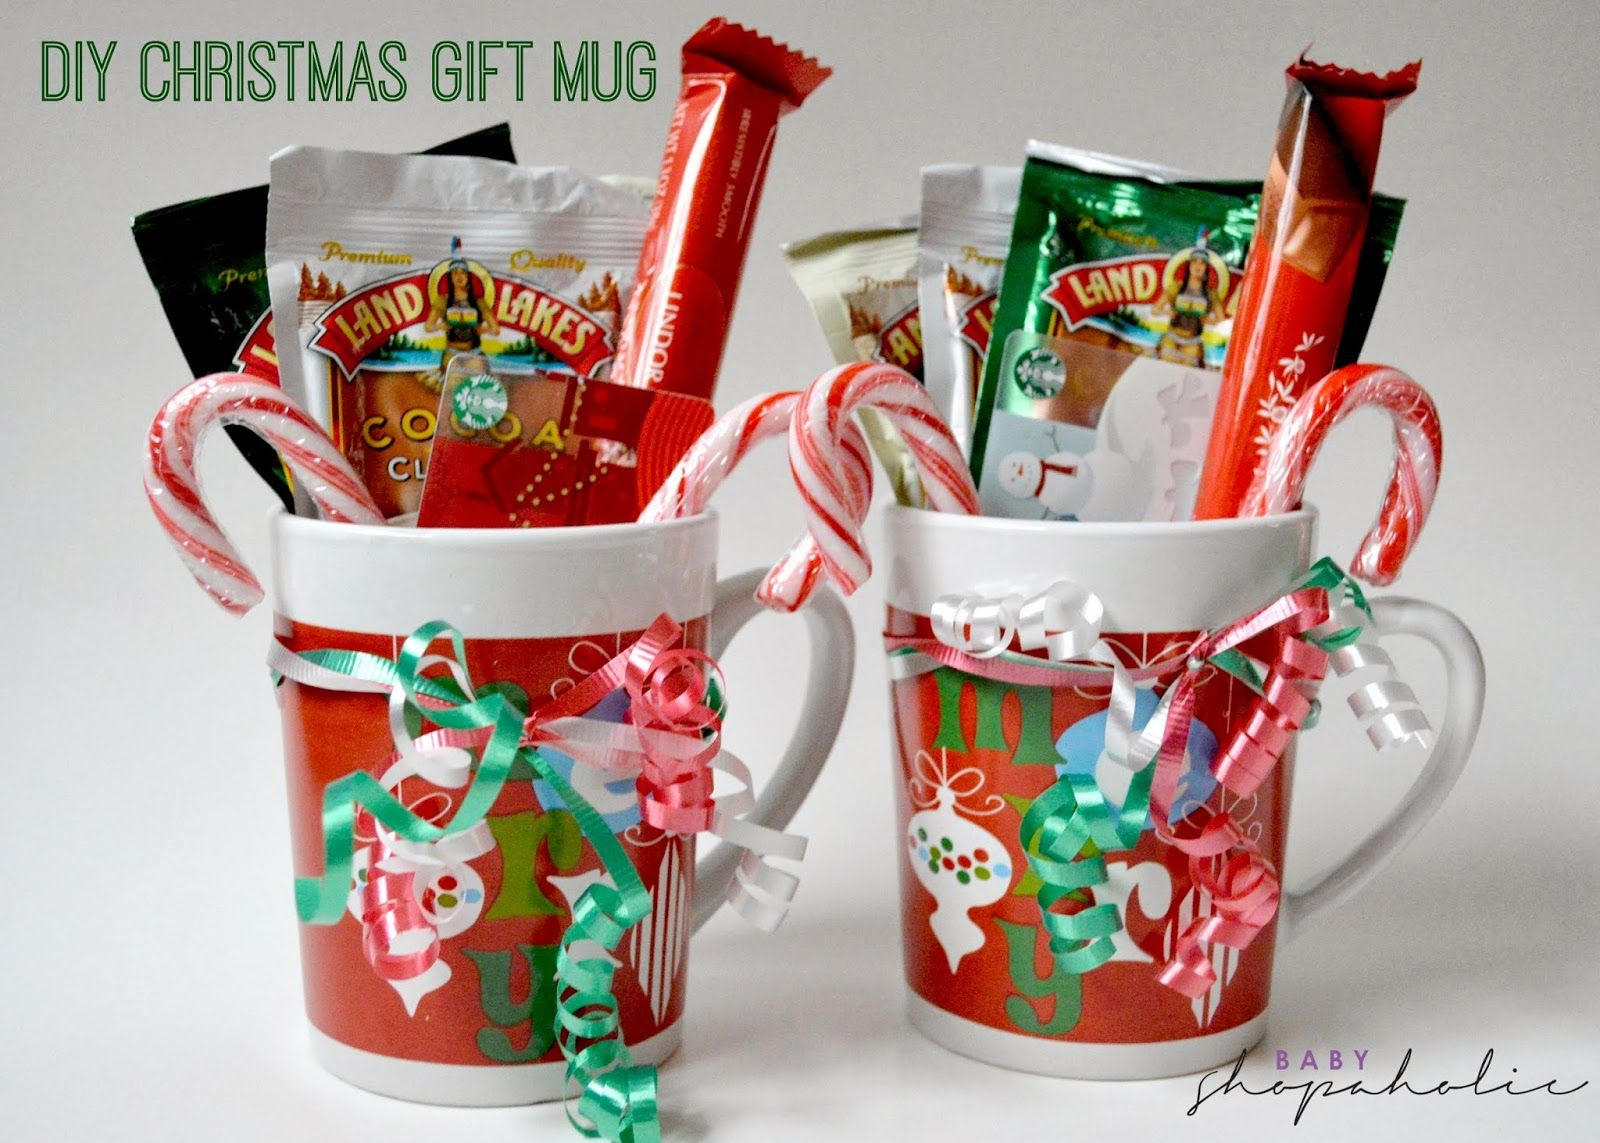 21 Simple & Memorable DIY Christmas Gifts Anyone Would Be ...